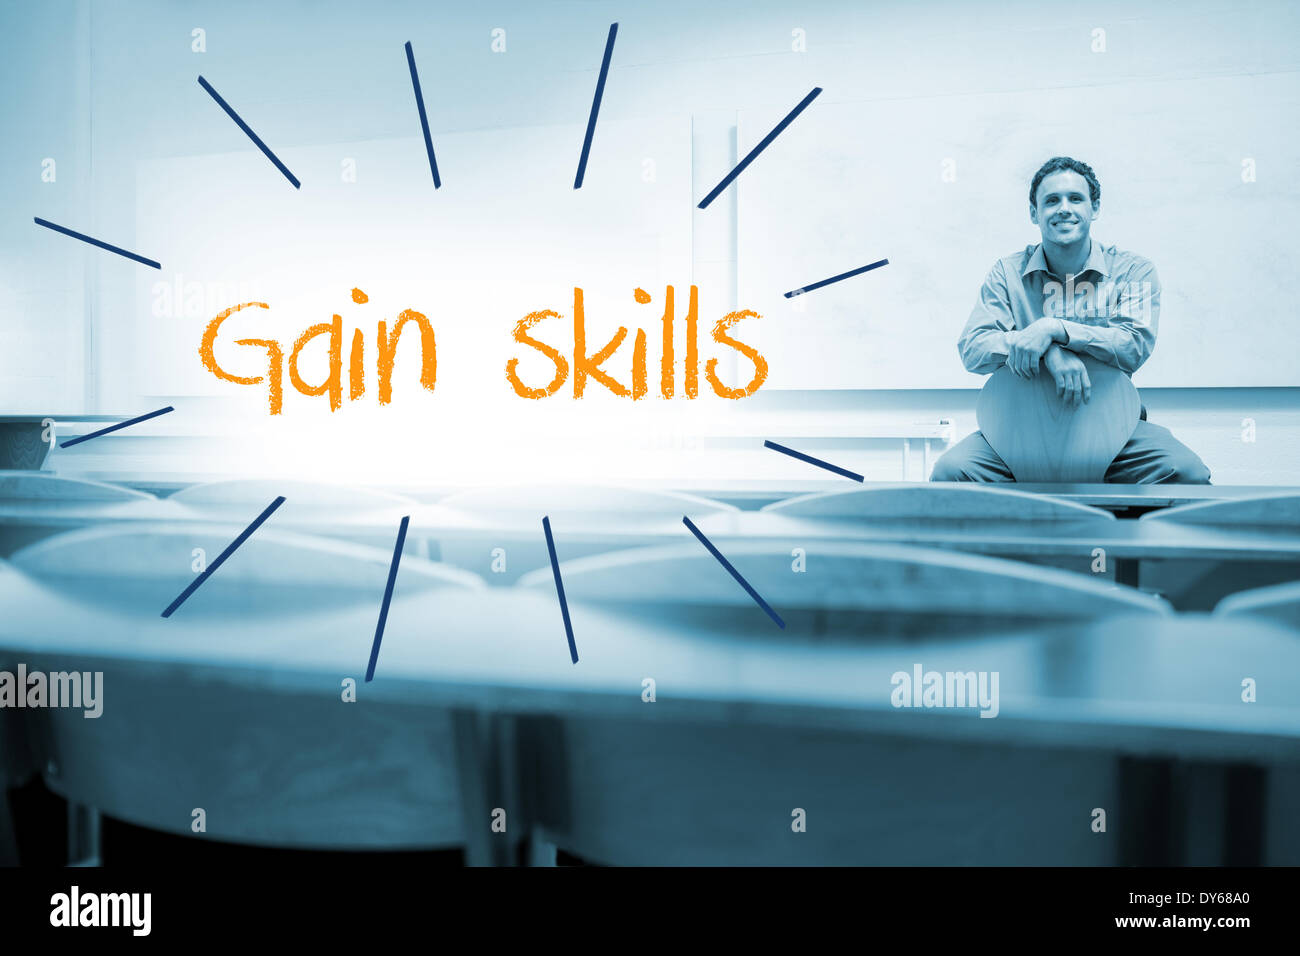 Gain skills against lecturer sitting in lecture hall - Stock Image